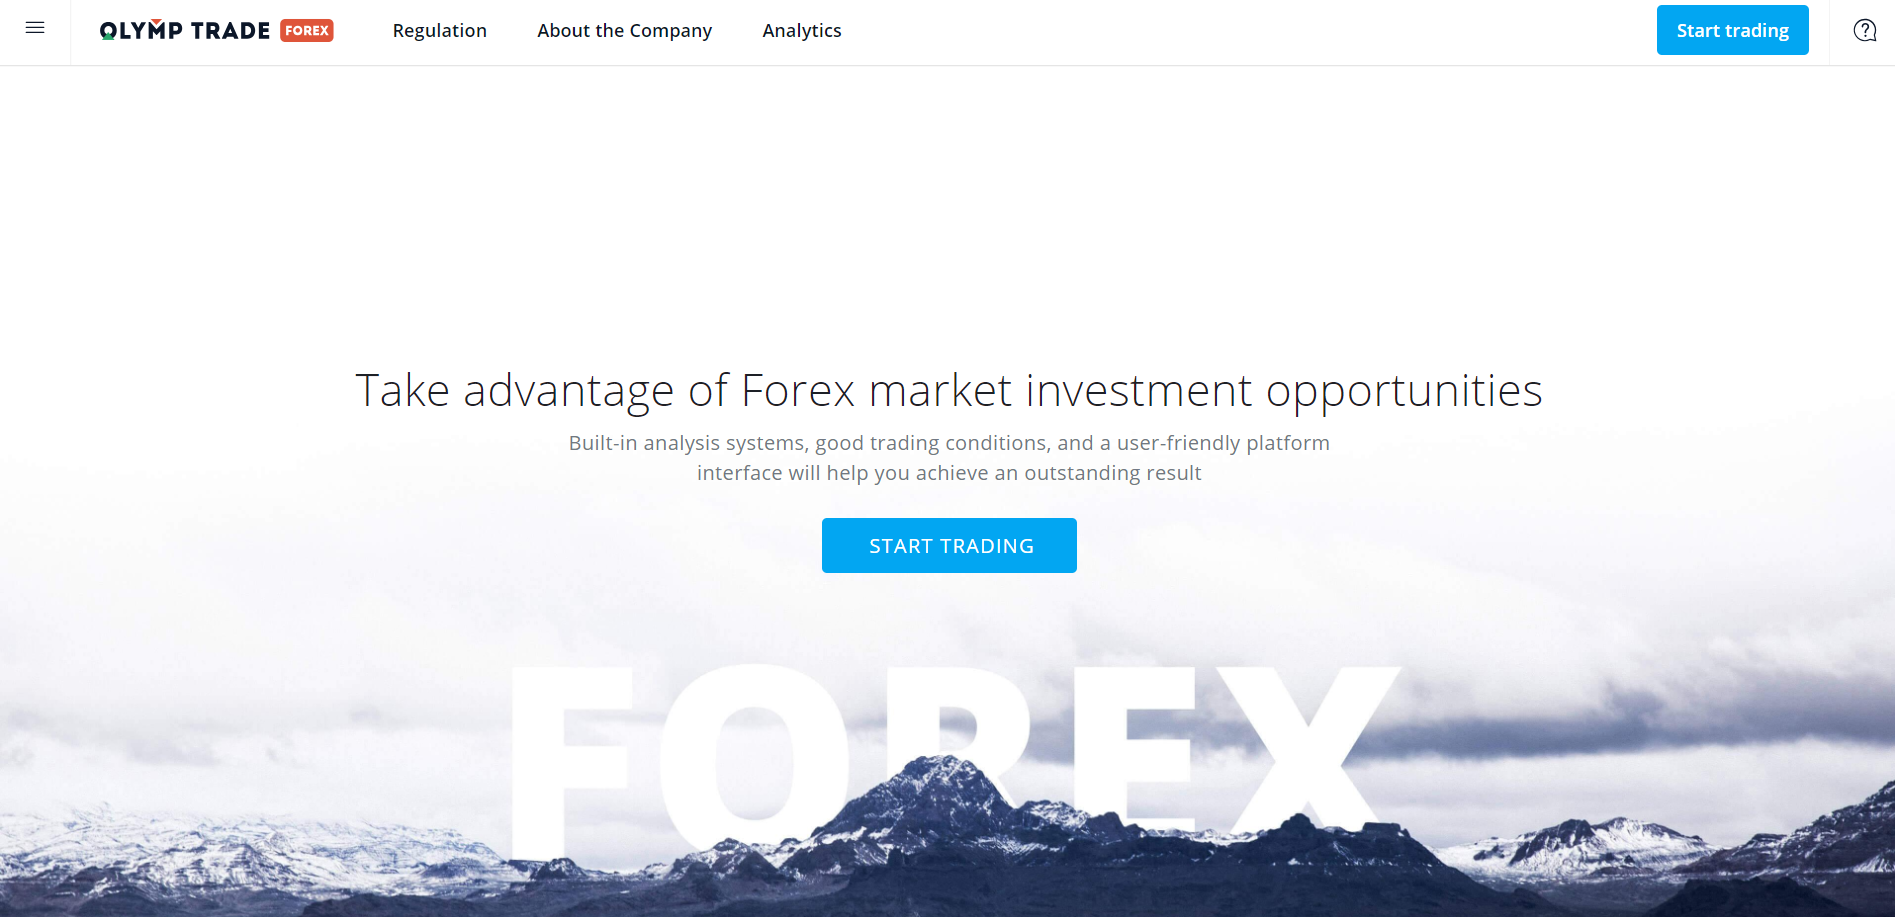 olymp trade forex